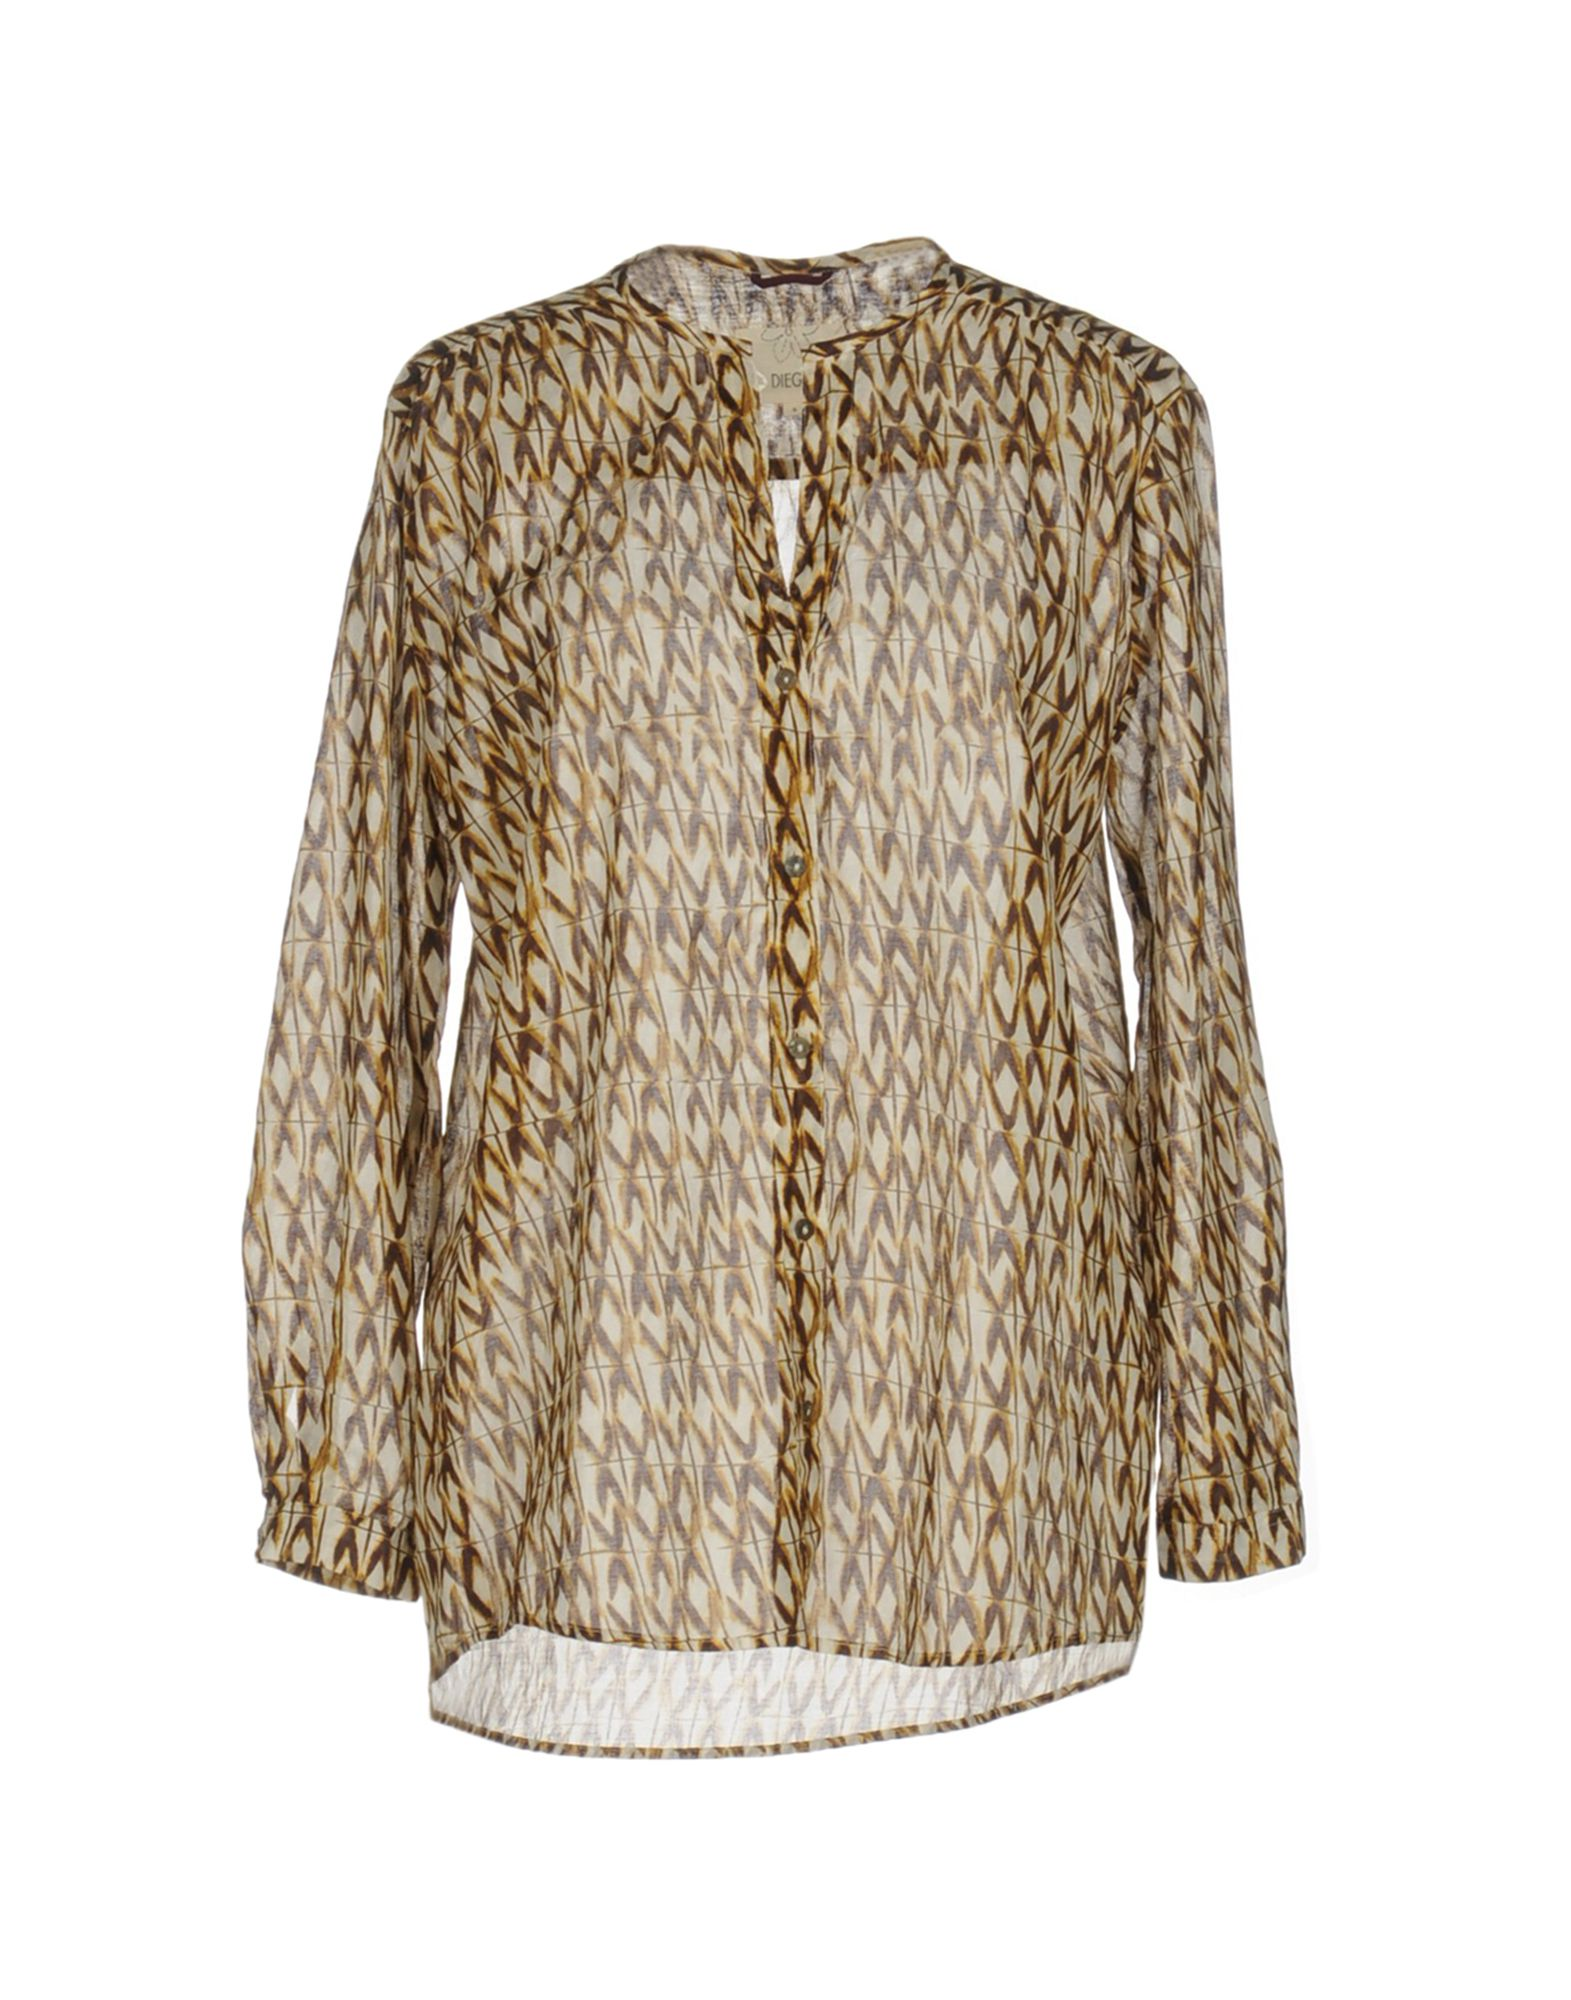 DIEGA Patterned Shirts & Blouses in Cocoa